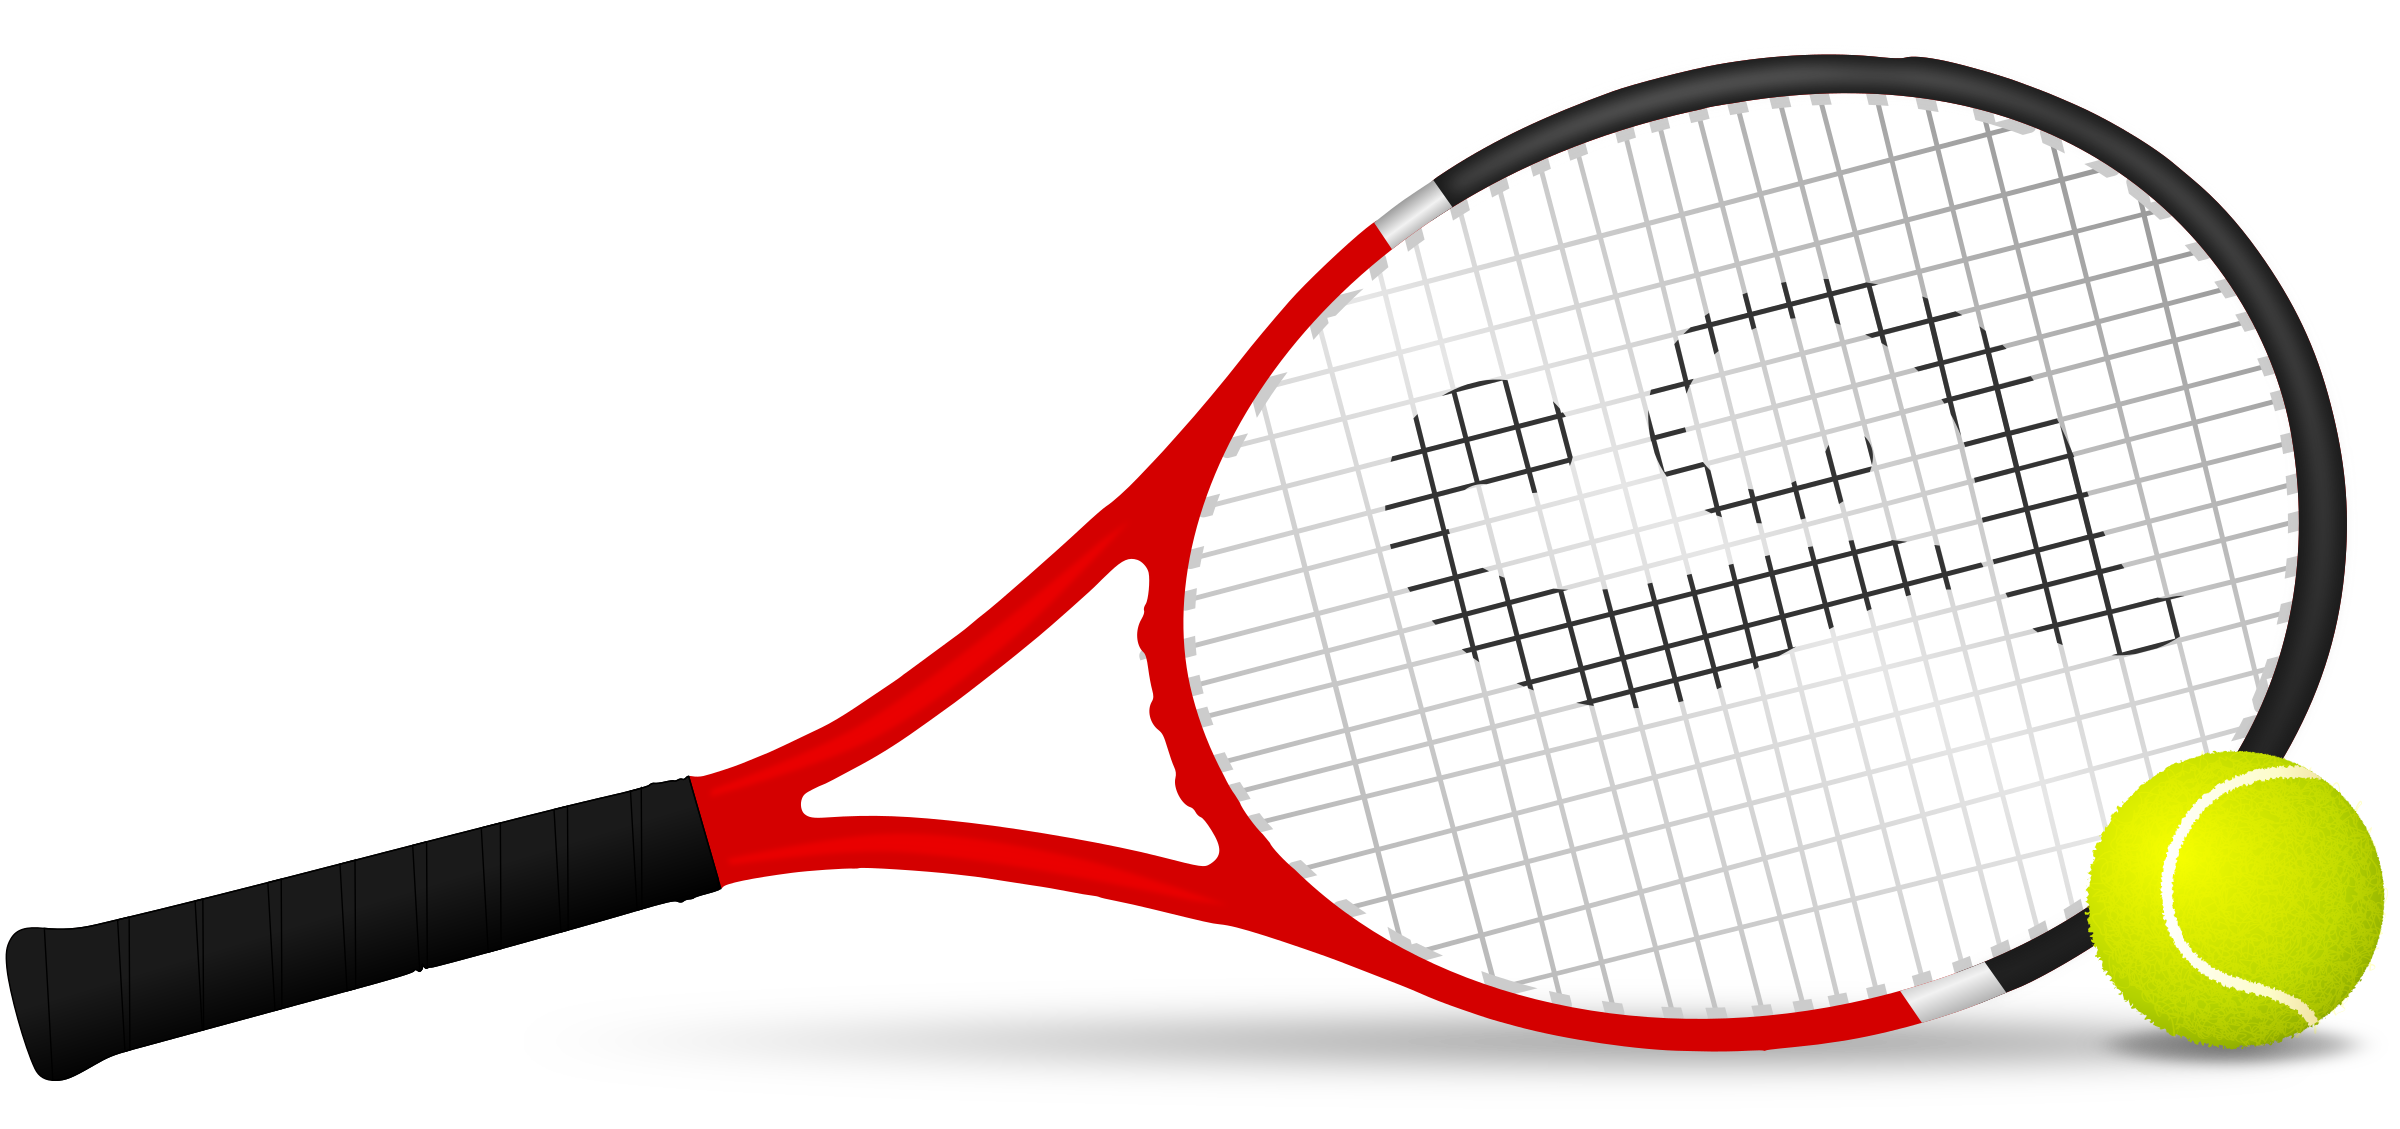 Big image png. Words clipart tennis